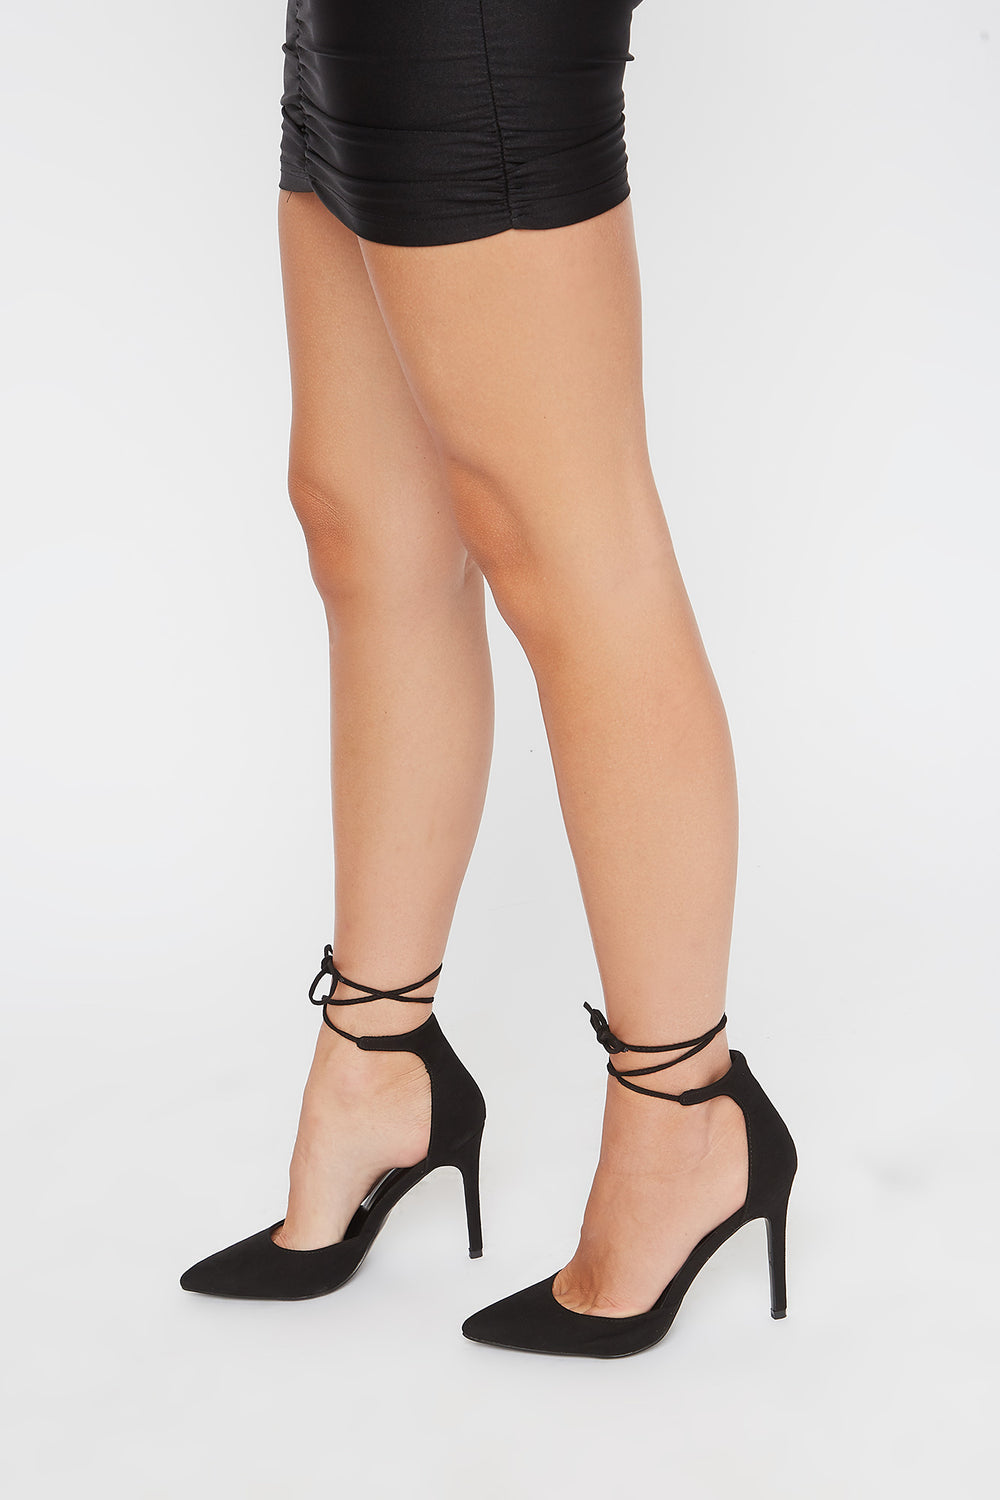 Ankle Tie Stiletto Pumps Black